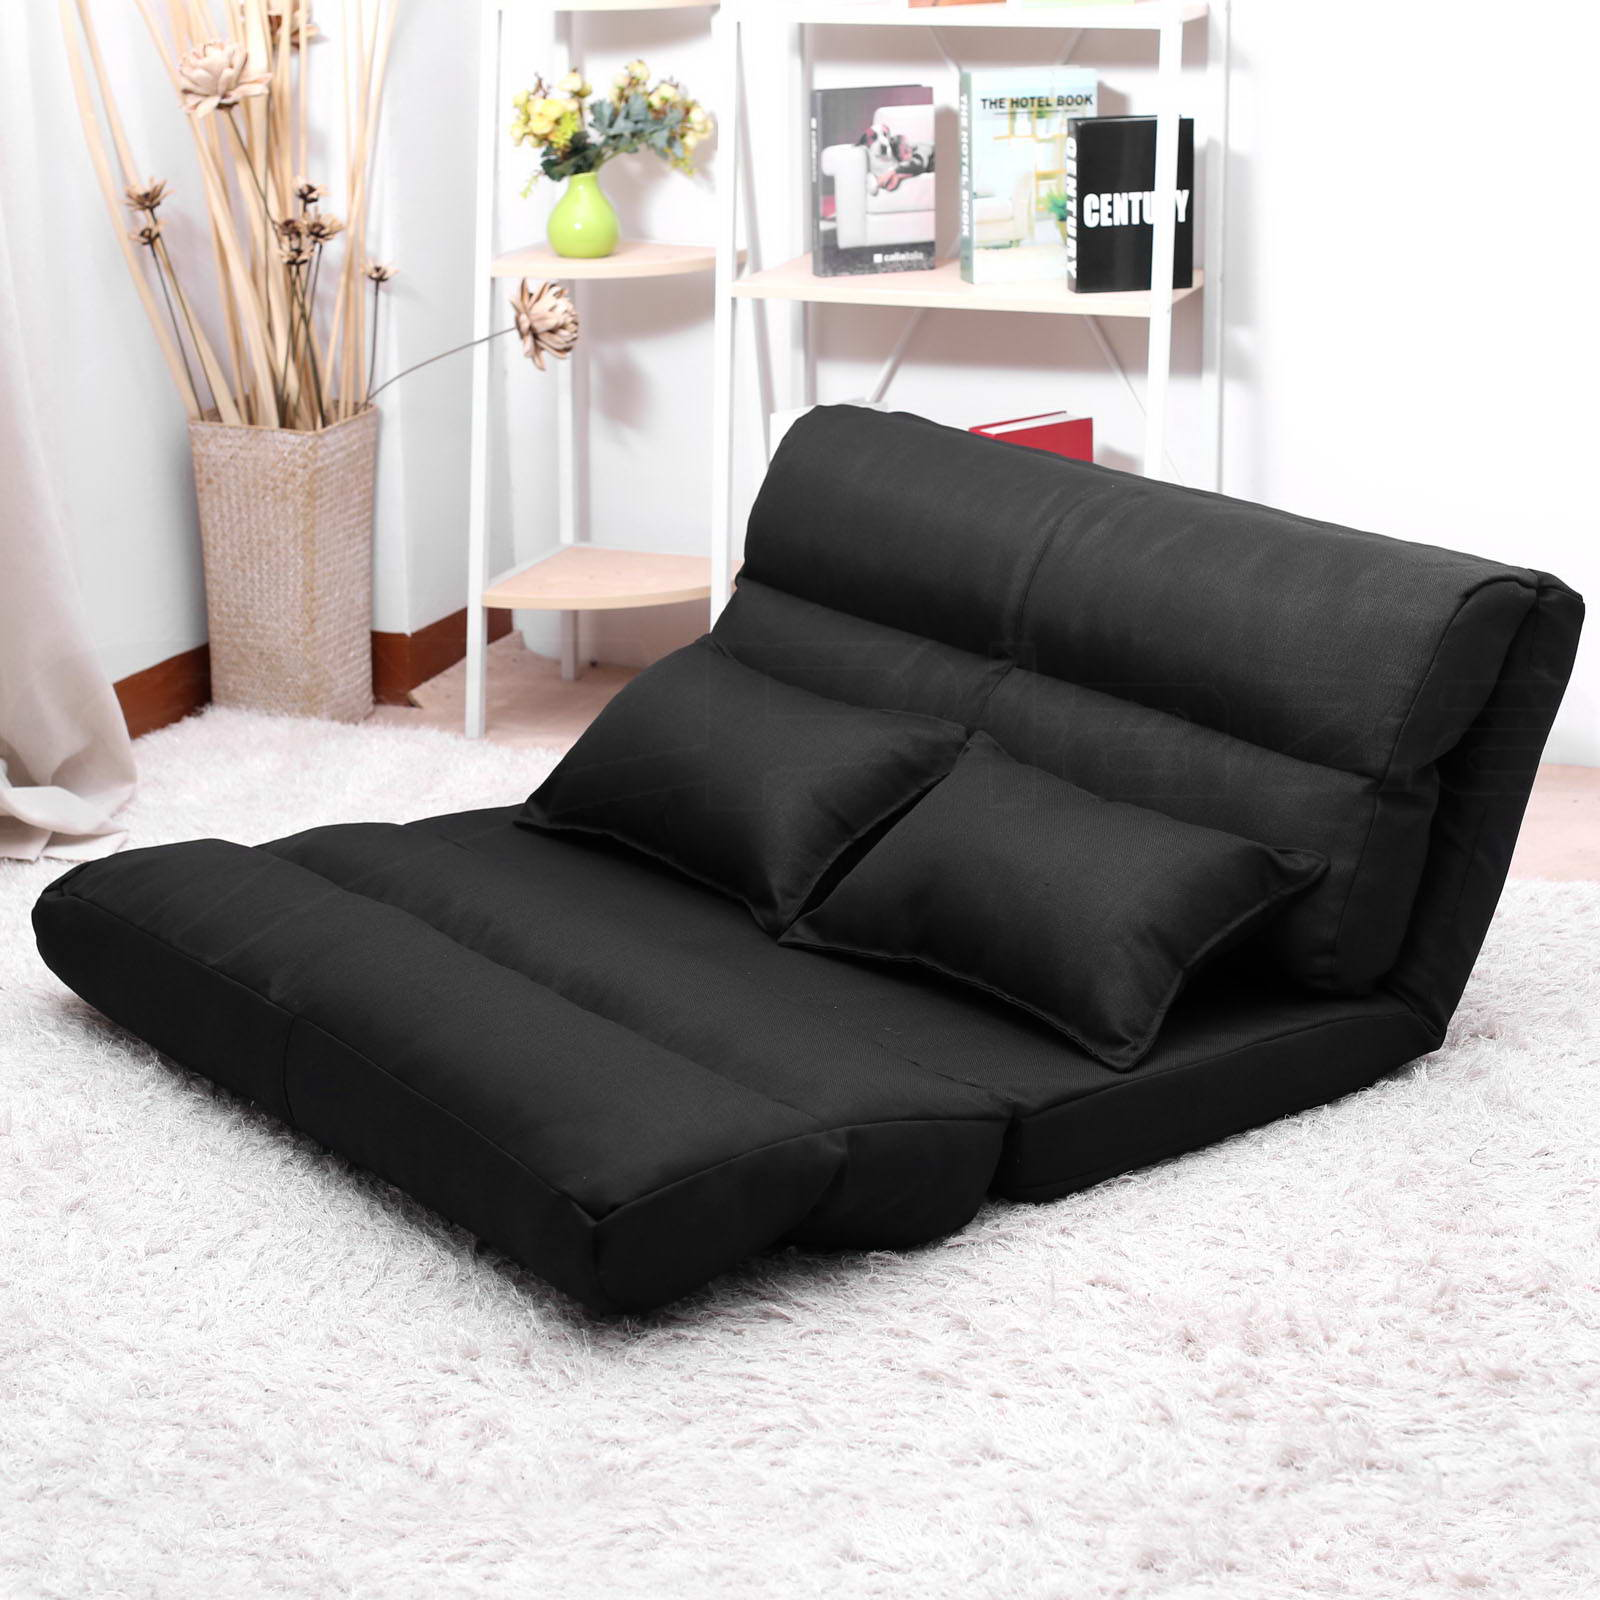 lounge sofa bed double size floor recliner folding chaise chair adjustable ebay. Black Bedroom Furniture Sets. Home Design Ideas